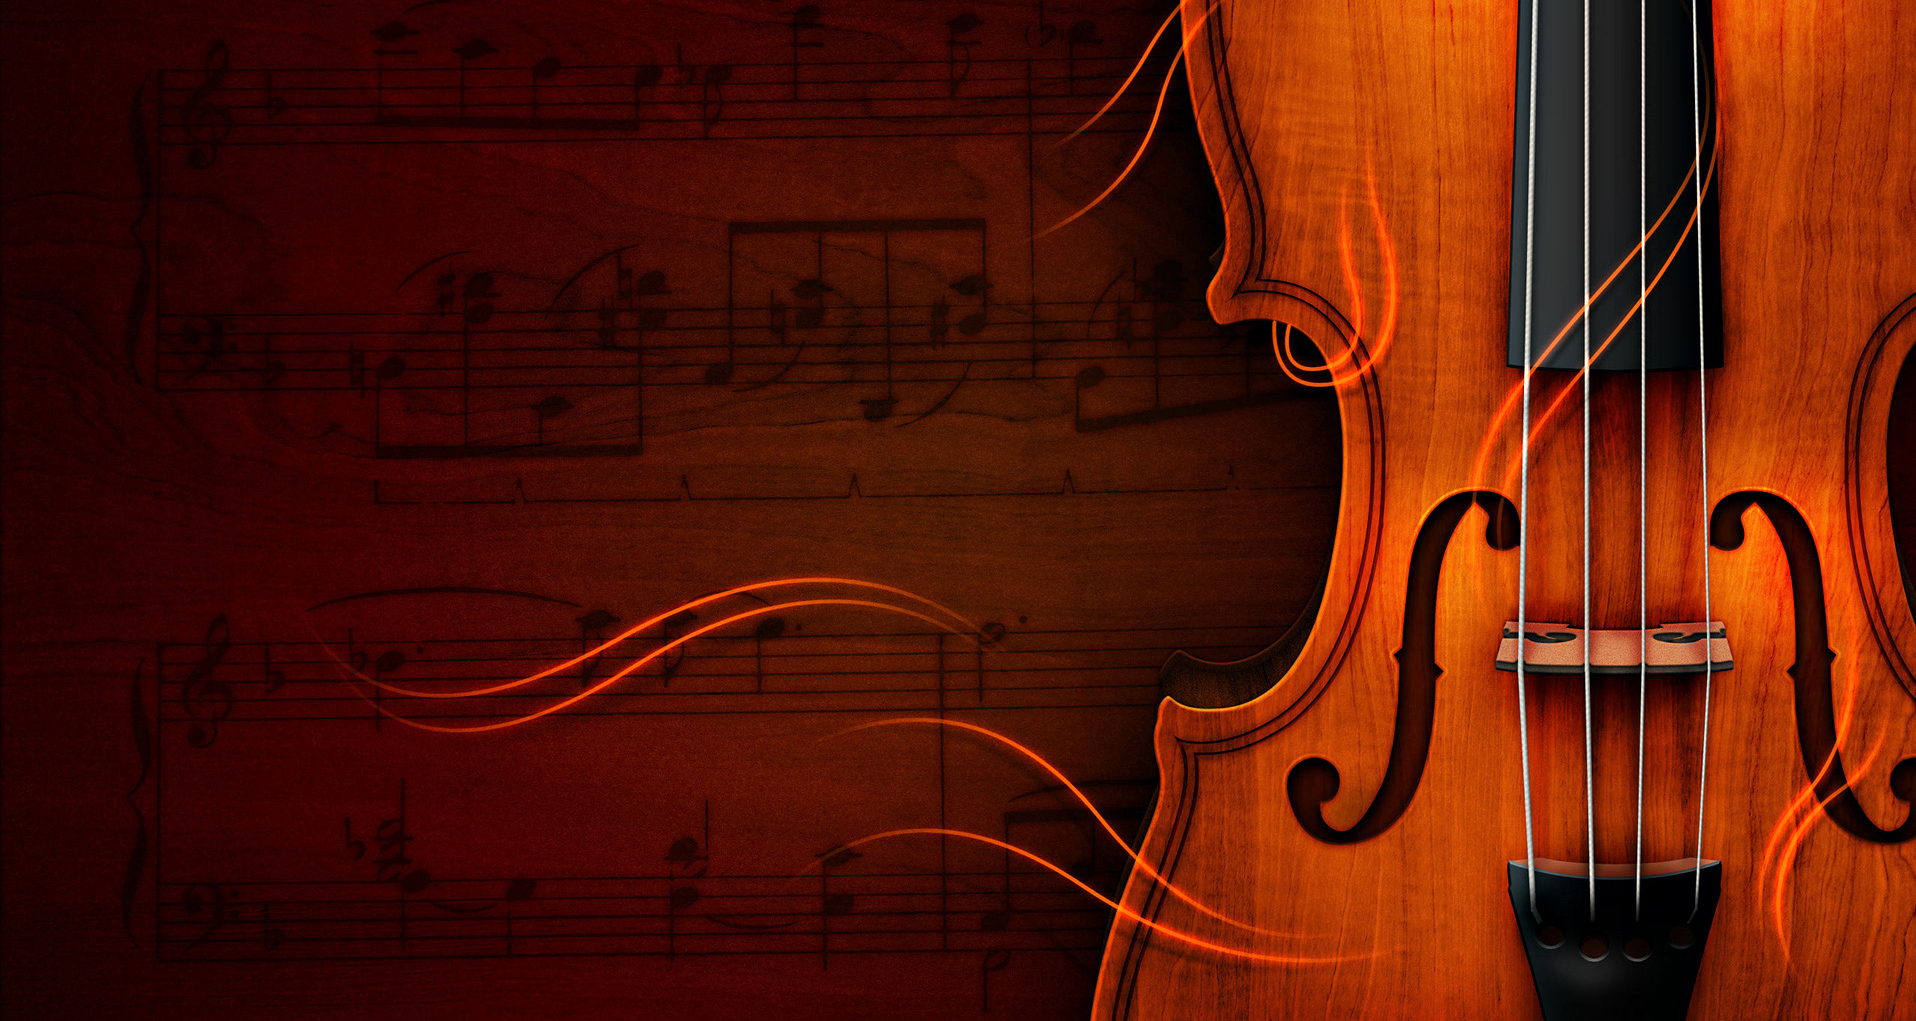 Violin-And-Tone-Music-Wallpaper-Desktop.jpg